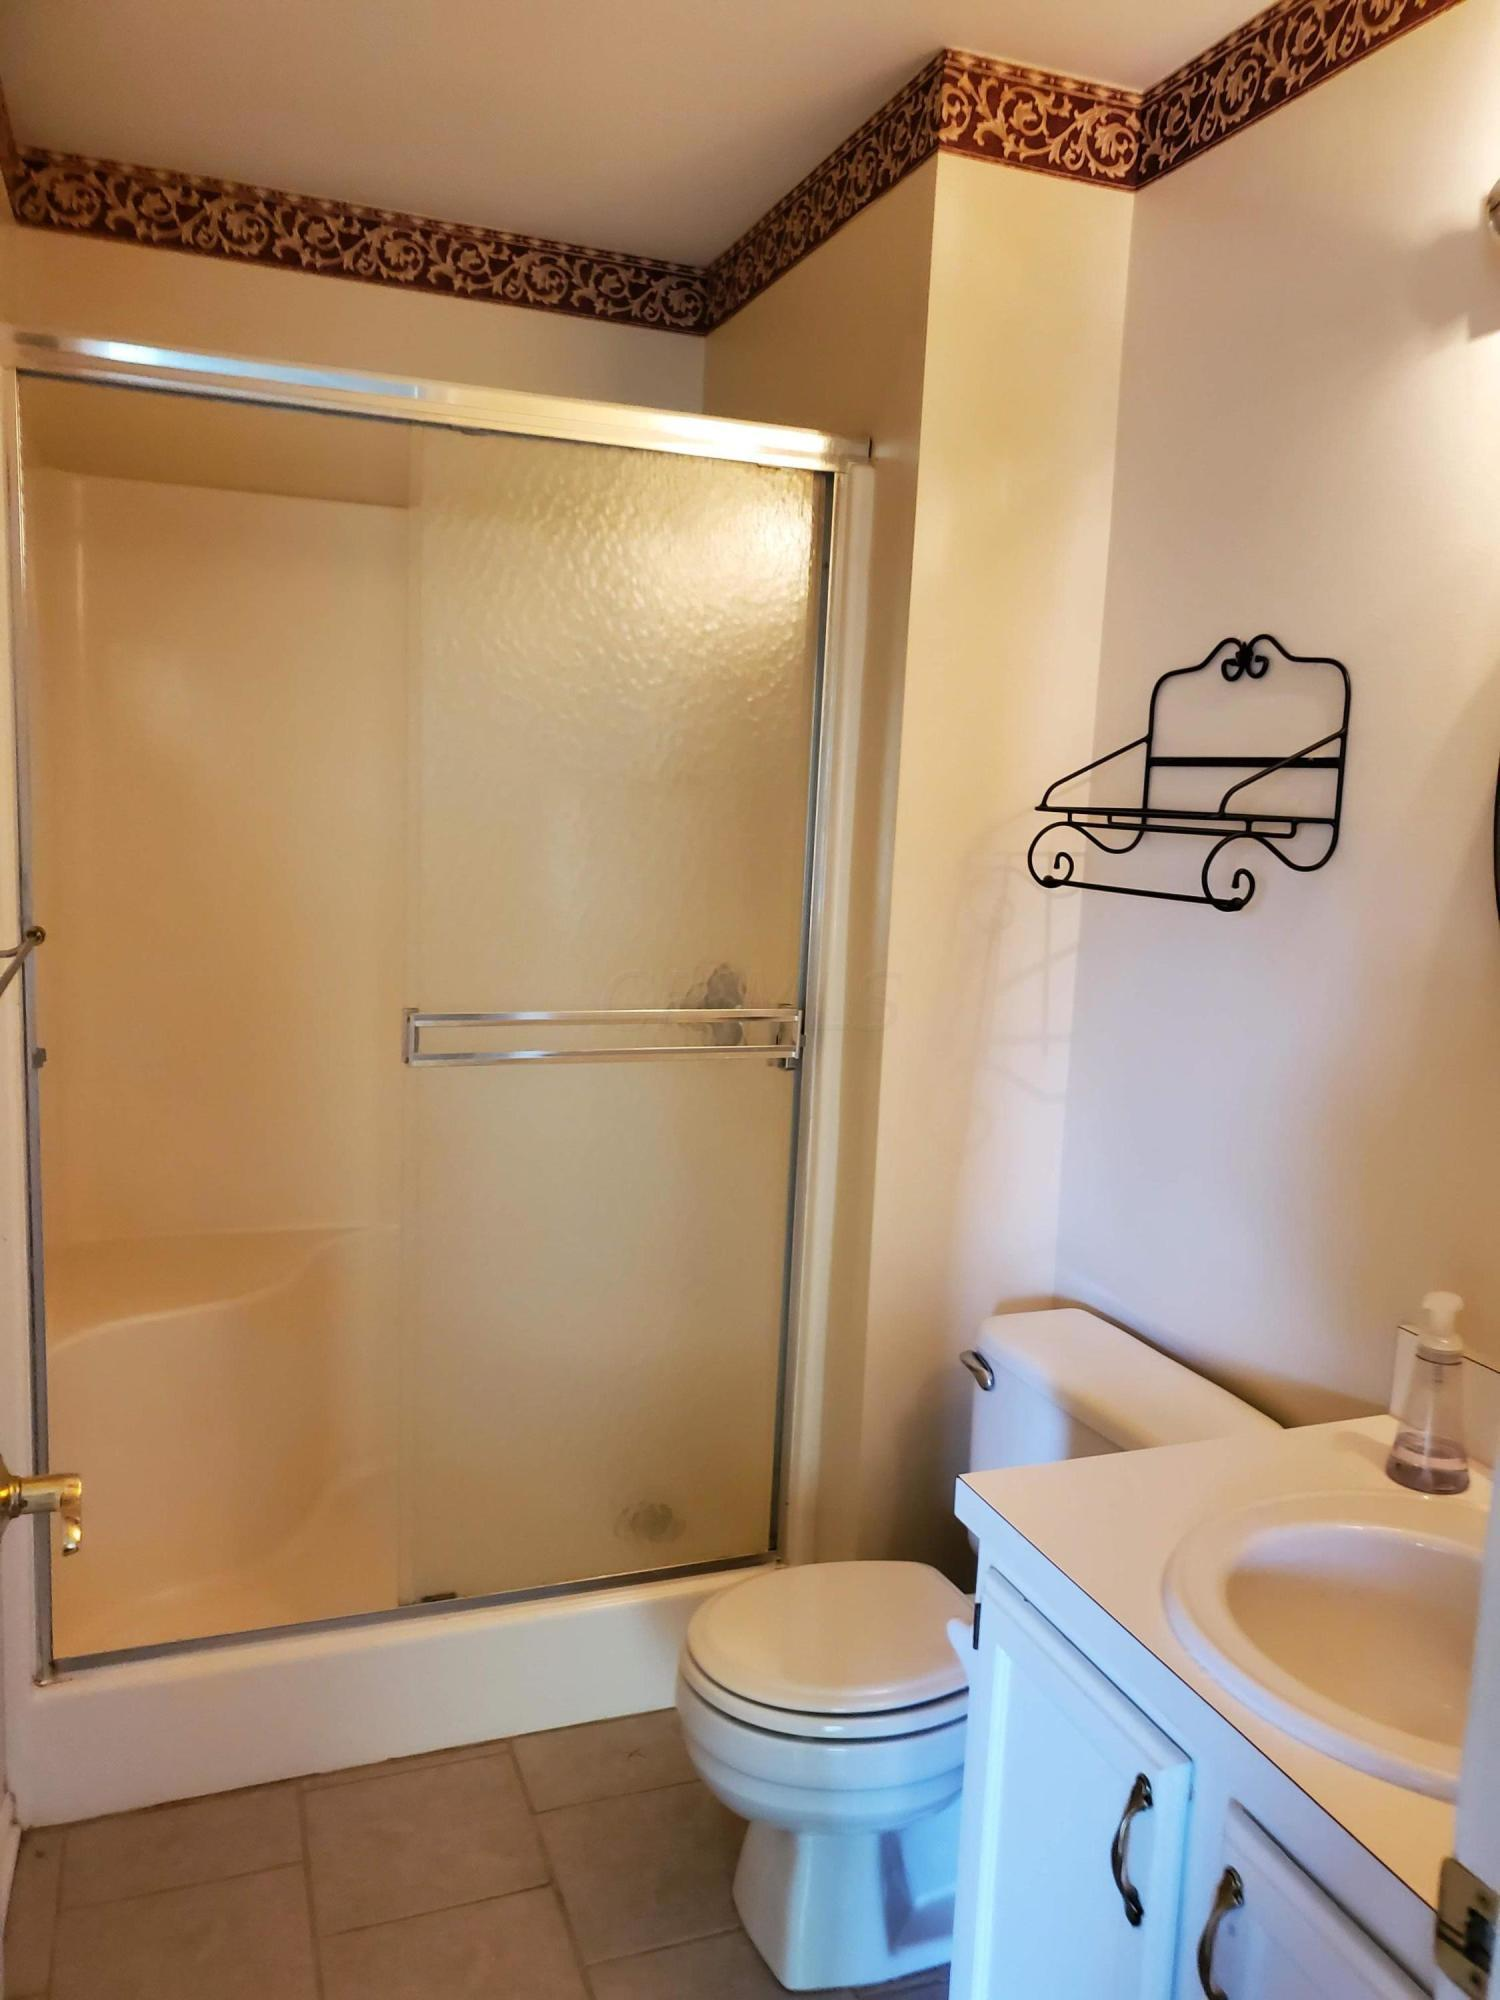 2245 Montague Court, Columbus, Ohio 43220, 3 Bedrooms Bedrooms, ,3 BathroomsBathrooms,Residential,For Sale,Montague,220032360